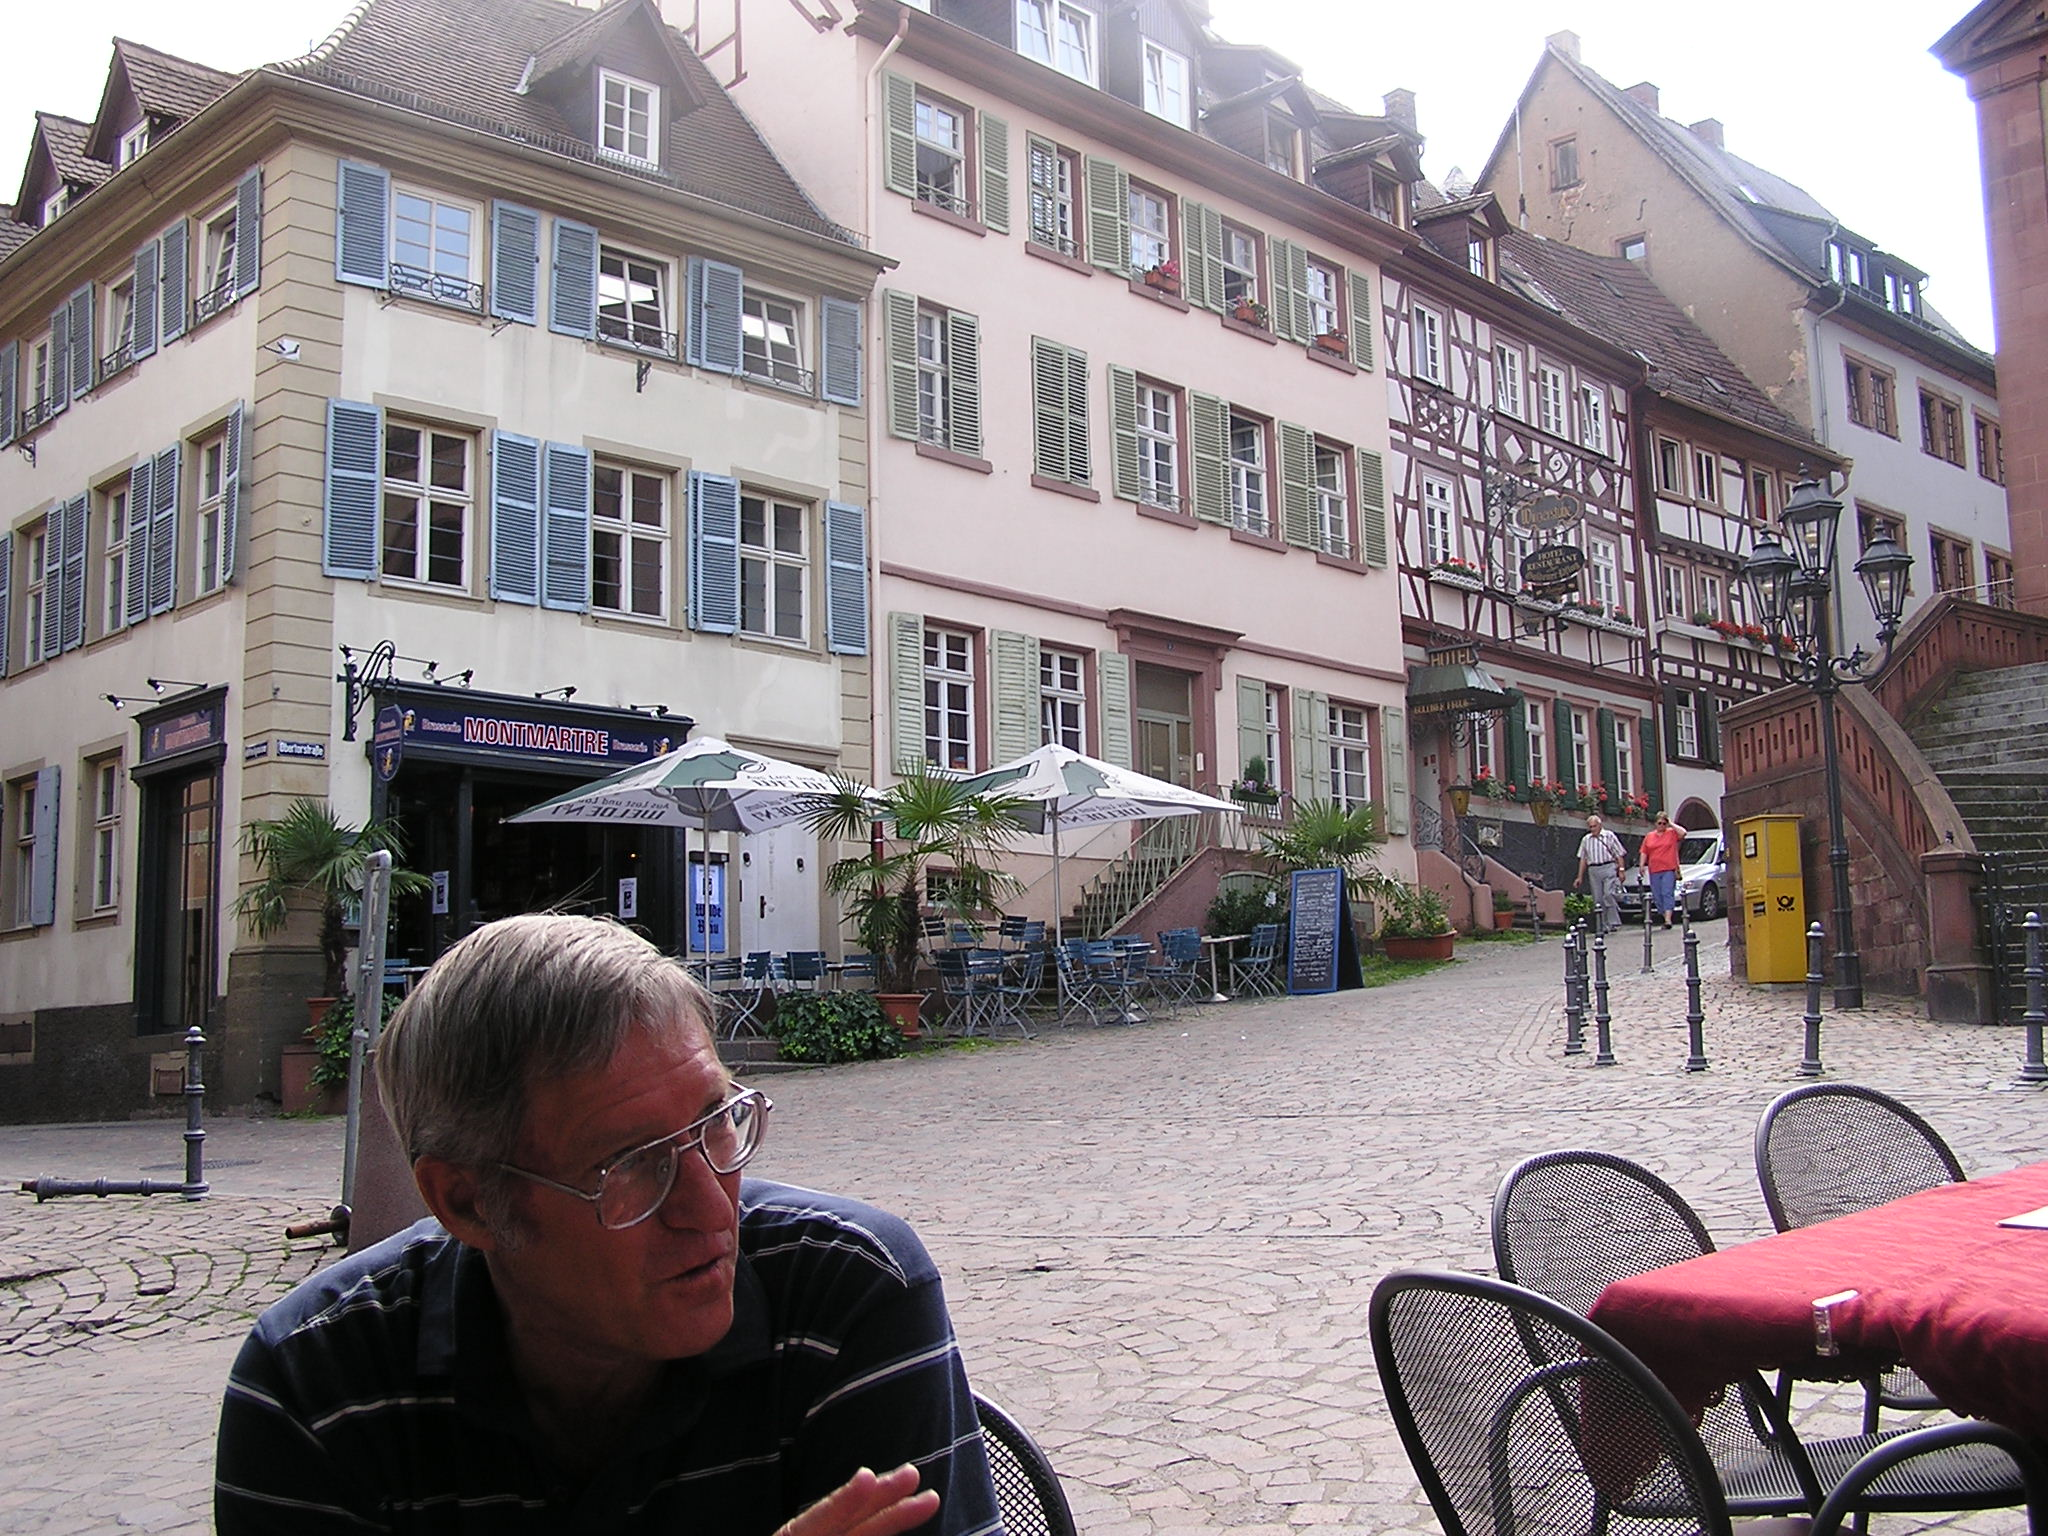 Weinheim Germany  City pictures : Weinheim Germany | Around and About with Viv